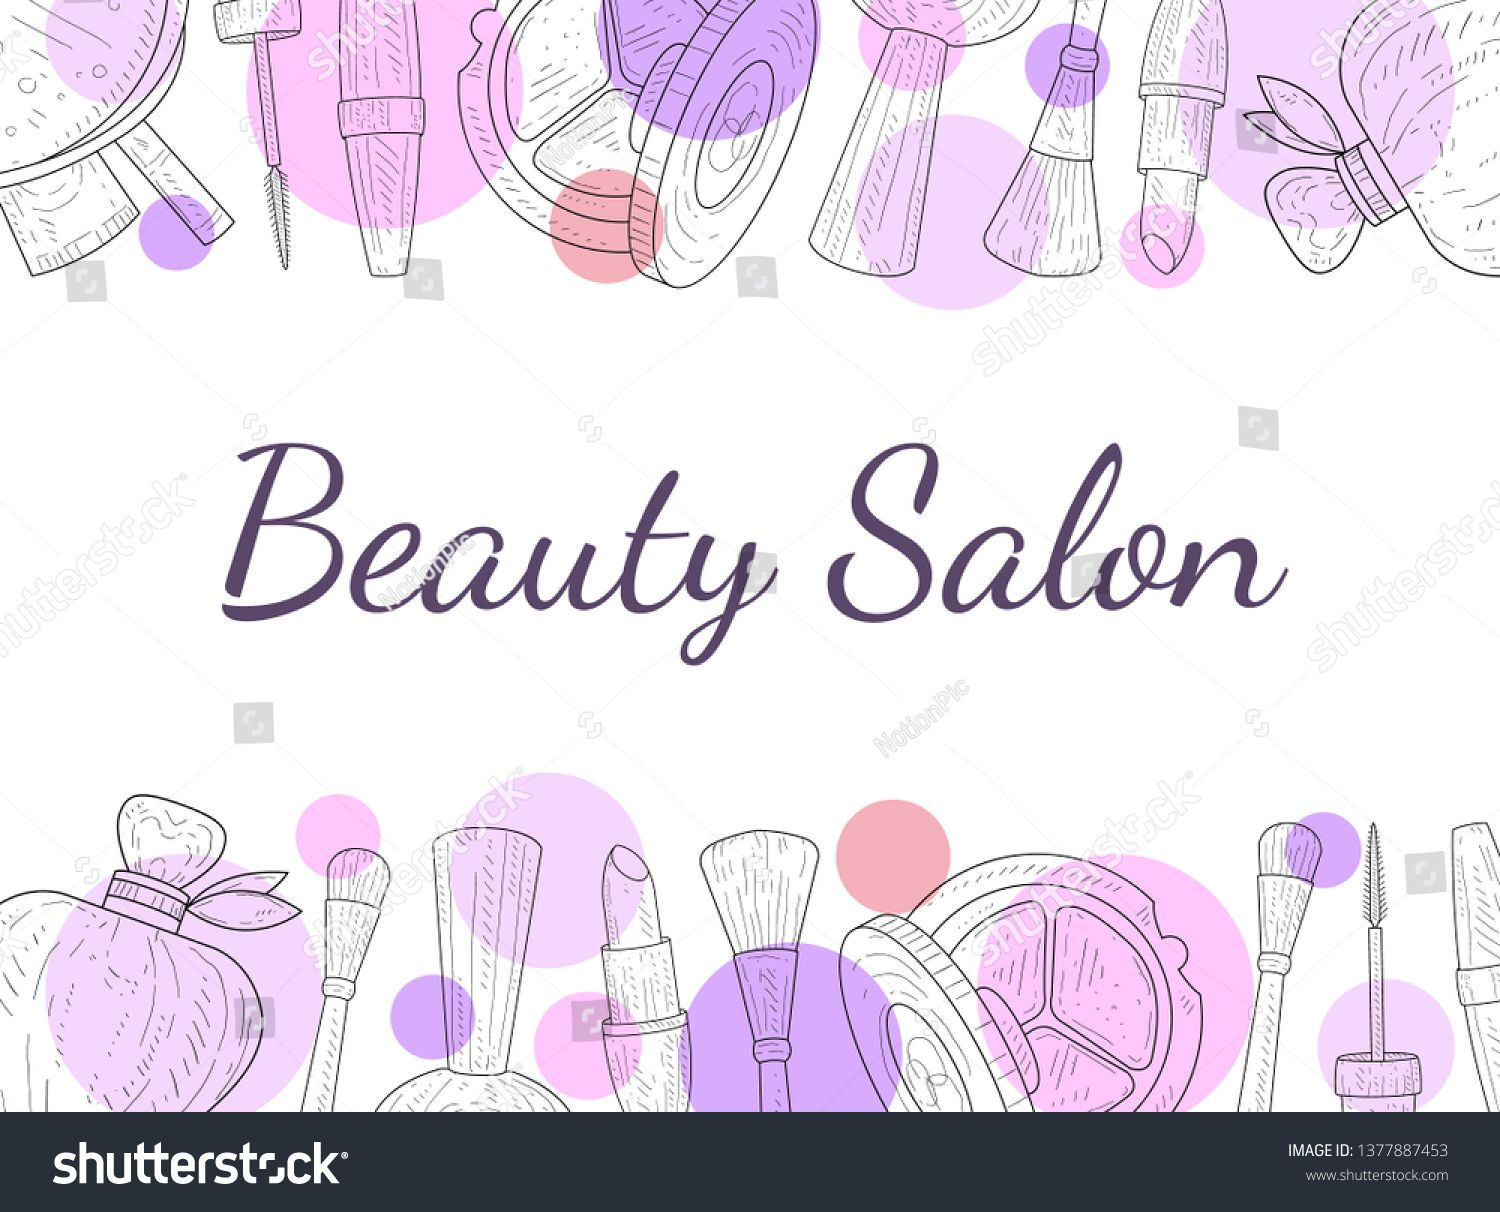 Beauty Salon Banner Template Cosmetics And Beauty Background With Make Up Artist Objects Vector Illustratio Cosmetics Banner Beauty Background Banner Template